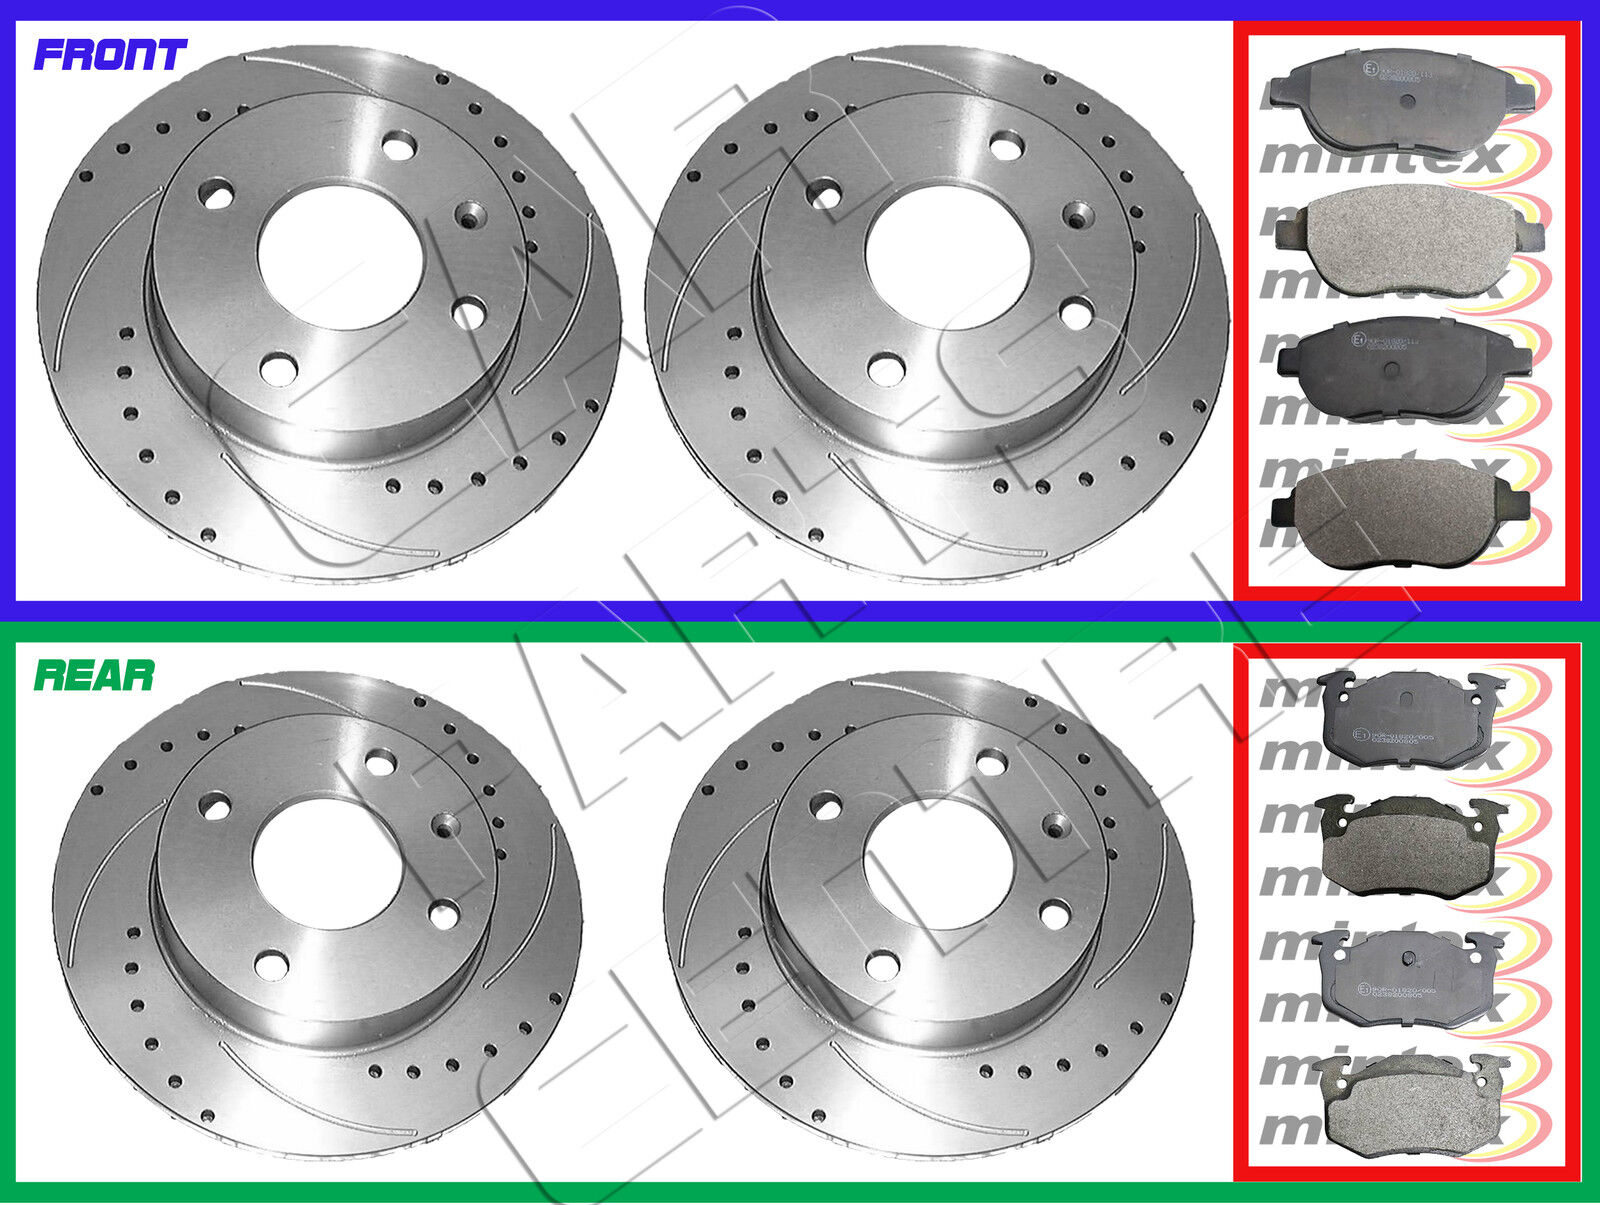 Peugeot 306 SW 1.8 100 Rear Brake Pads Discs 247mm Solid